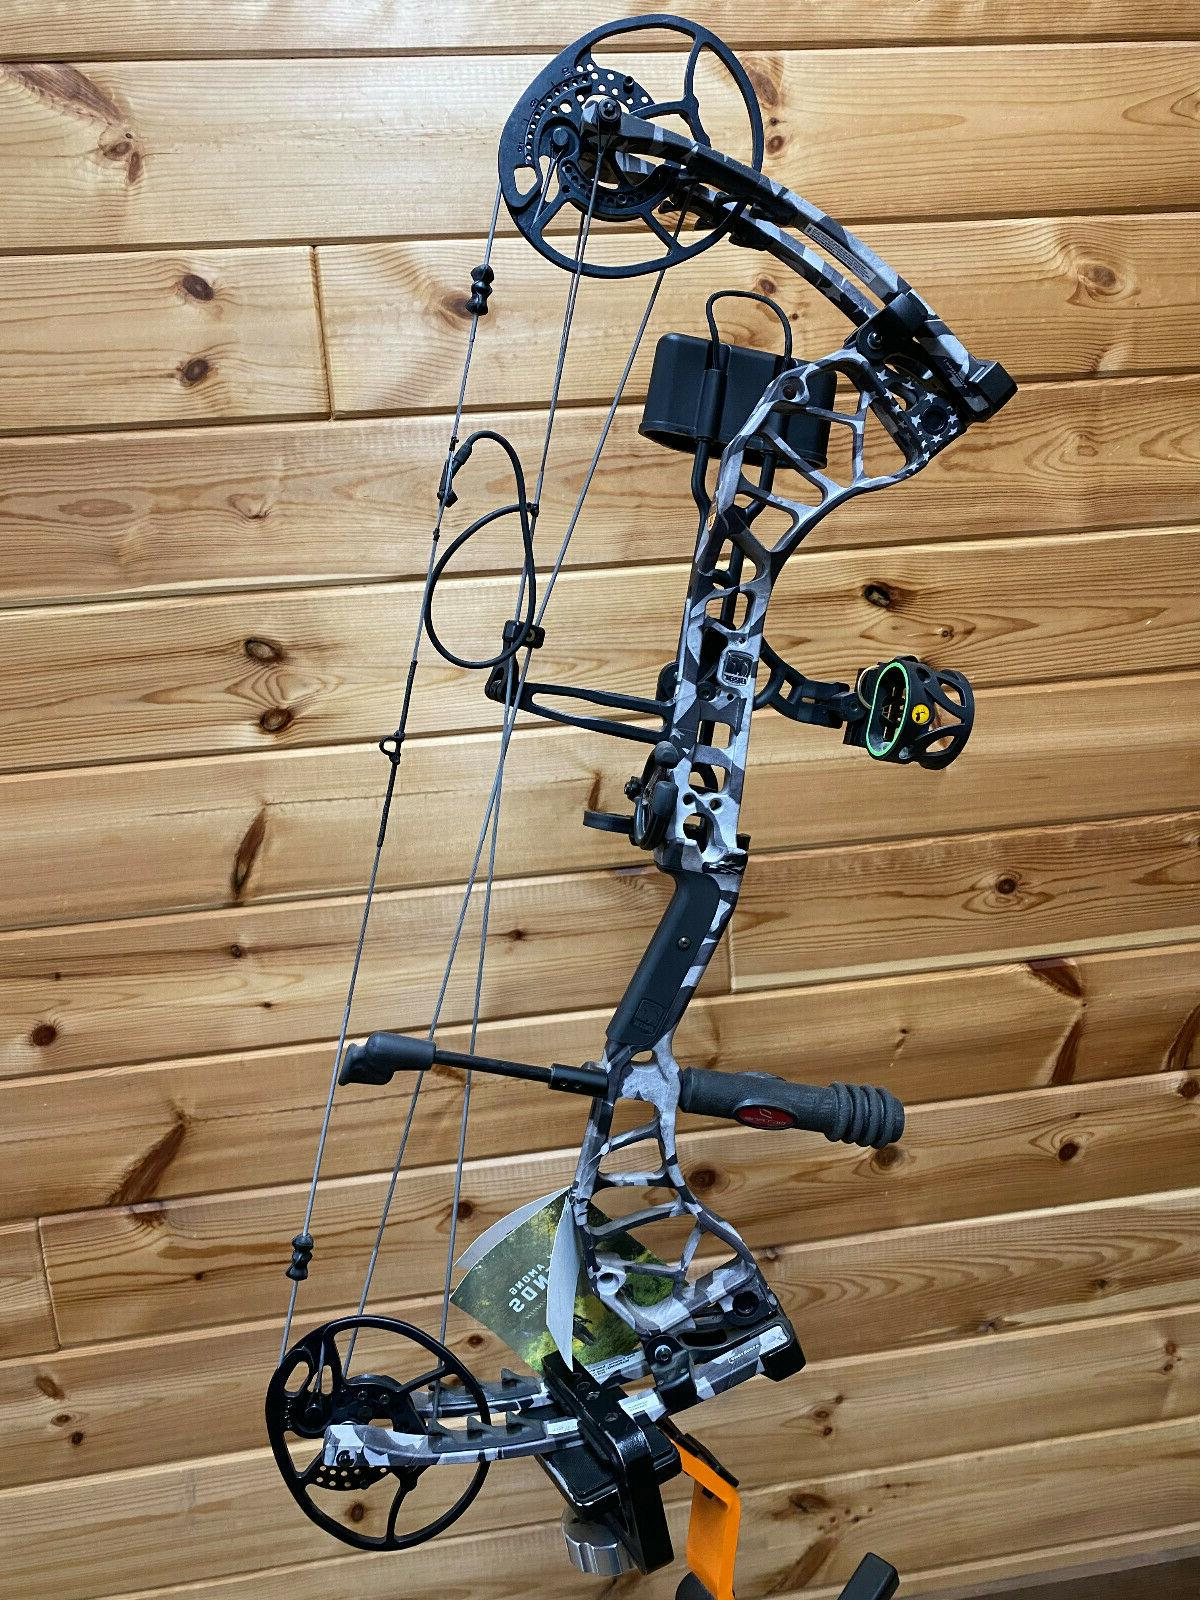 new archery divergent 28 ata hunting bow